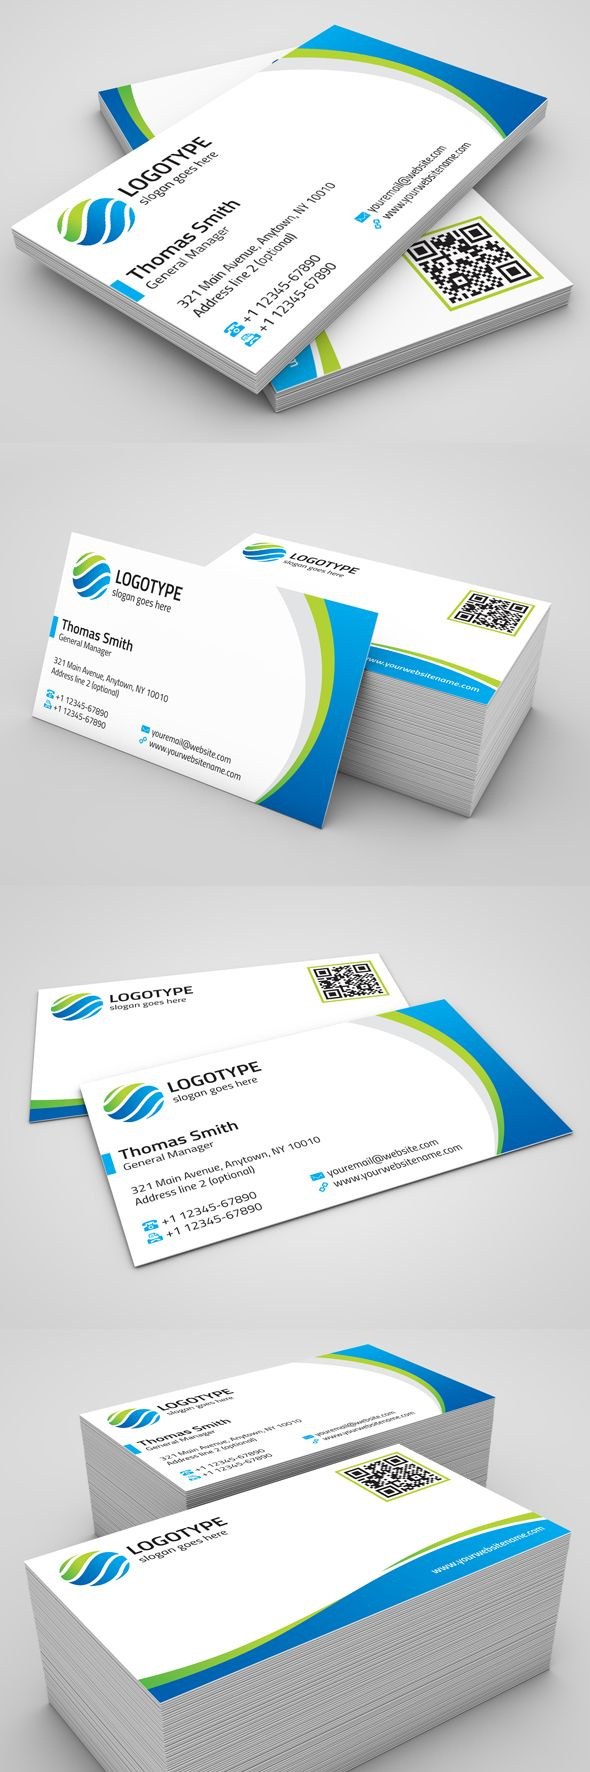 290 best Business Card Inspiration images on Pinterest | Business ...